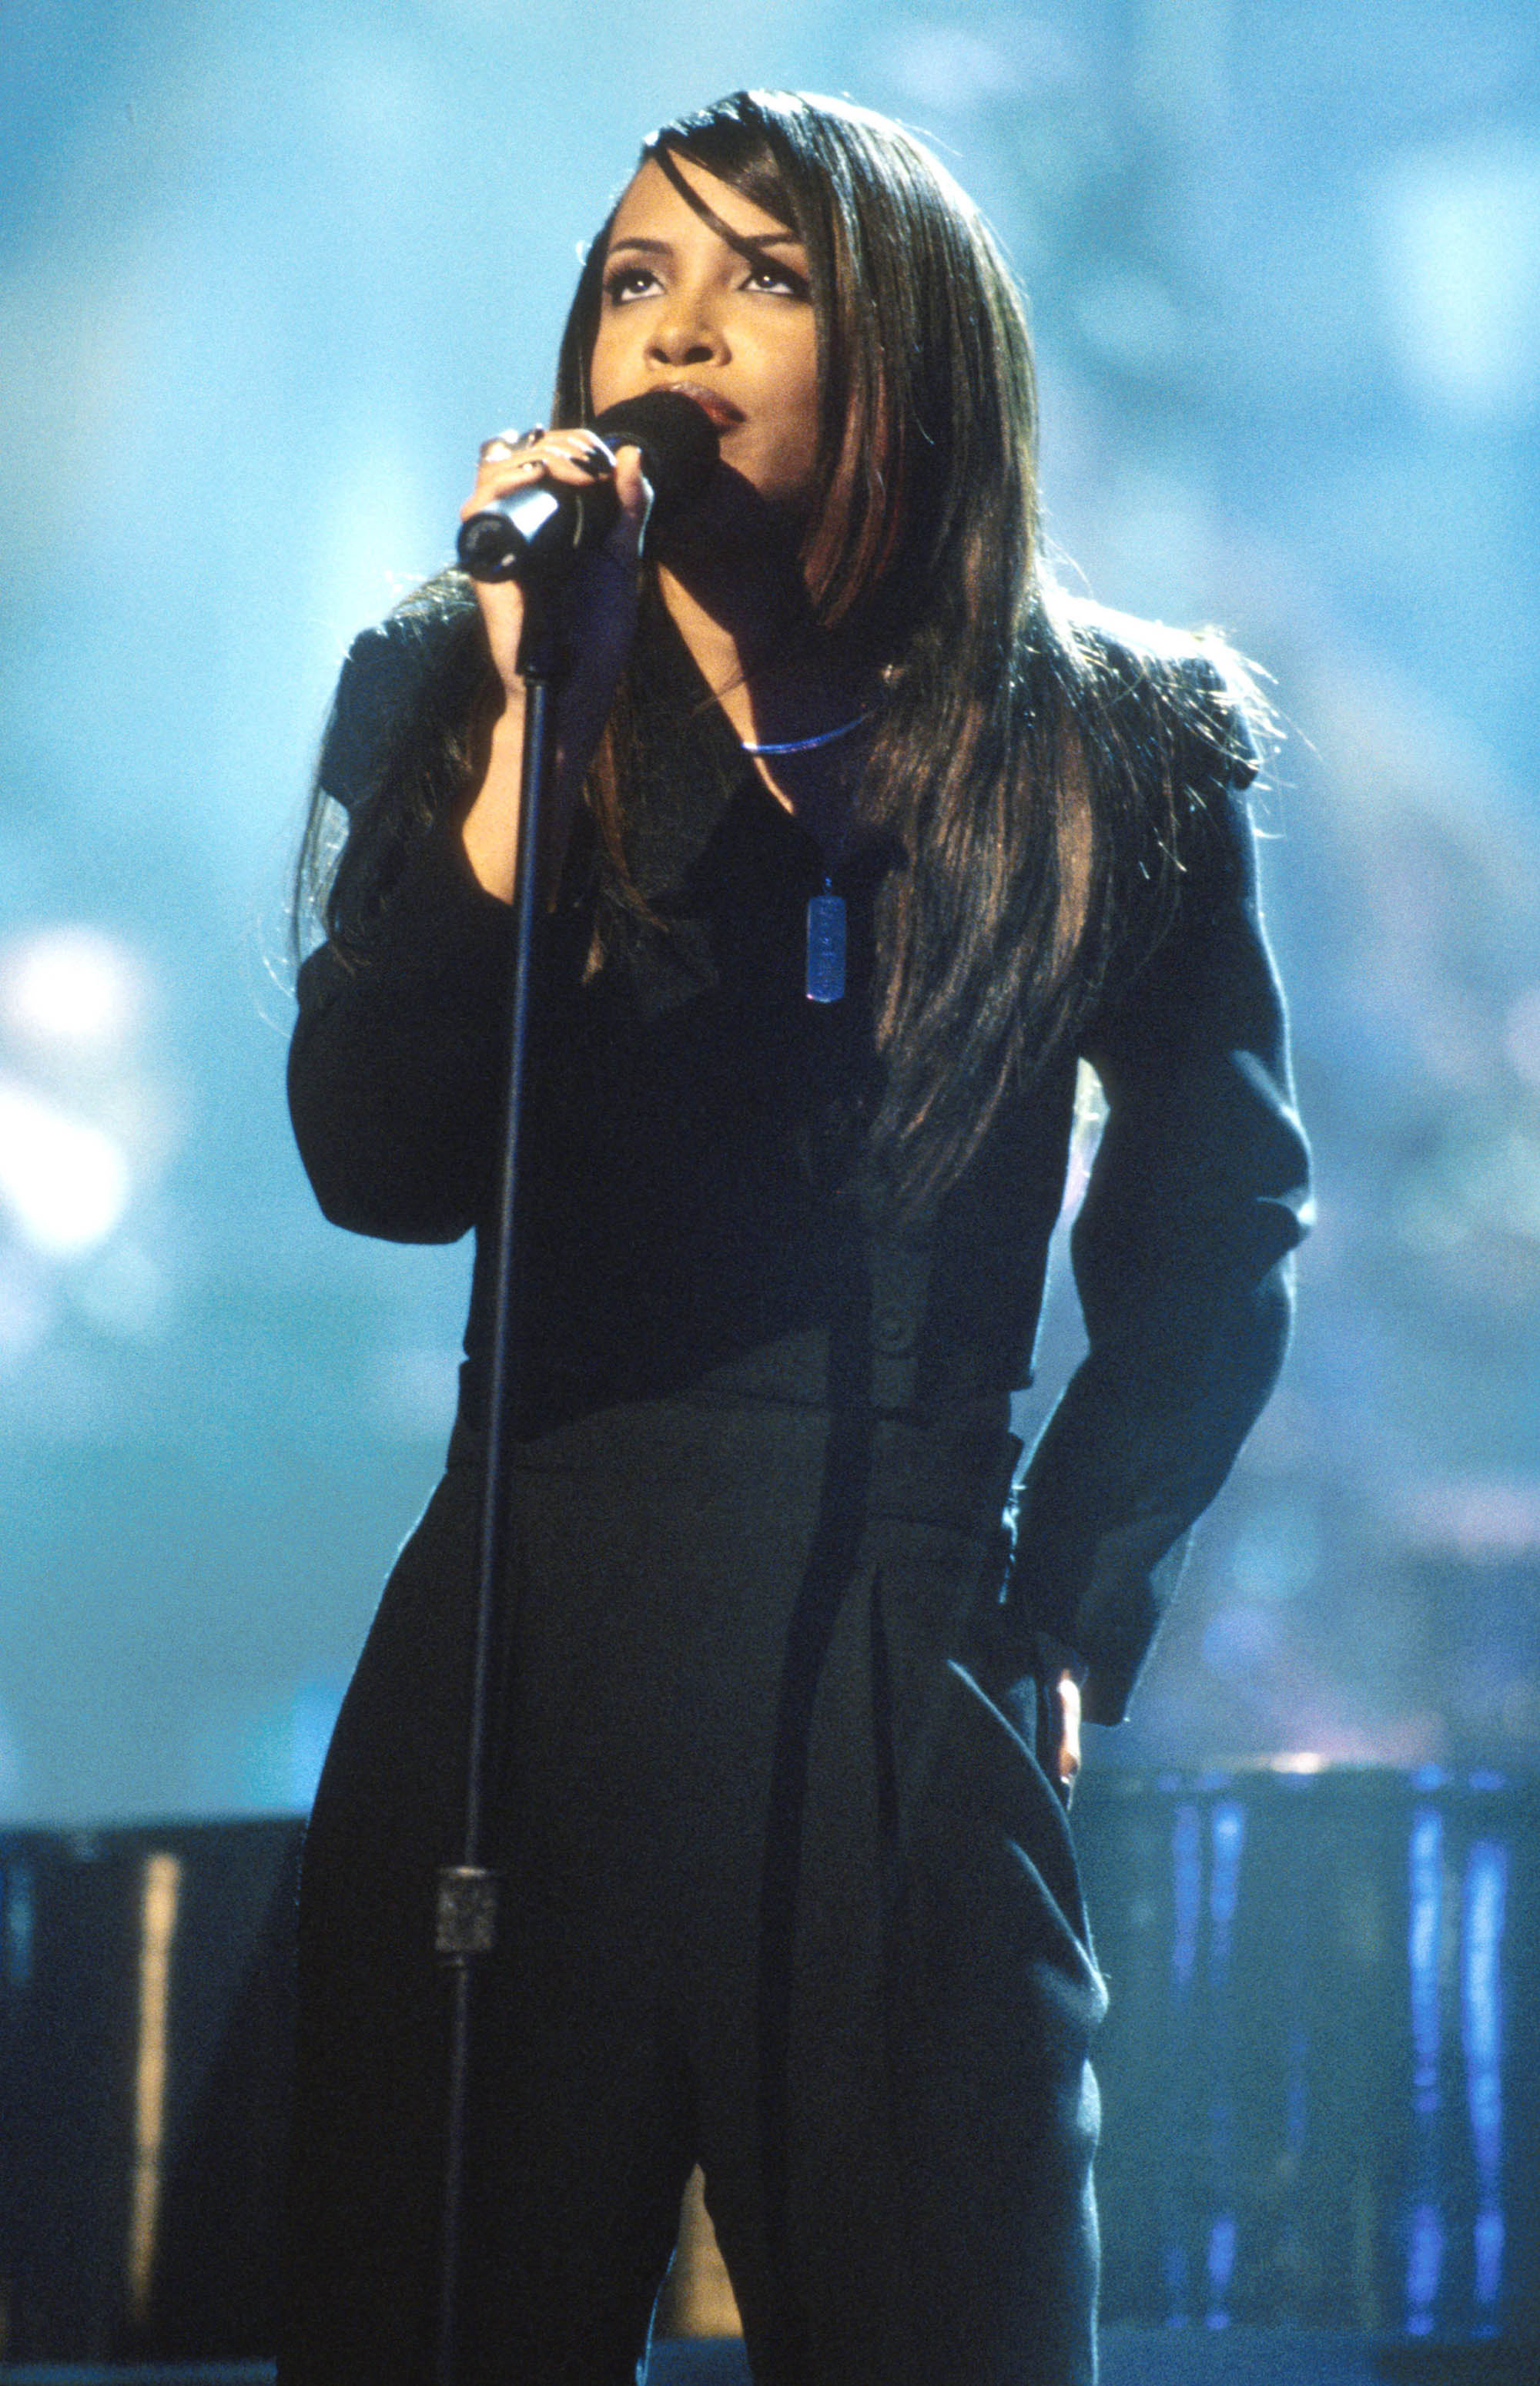 Aaliyah's music could soon appear on streaming services